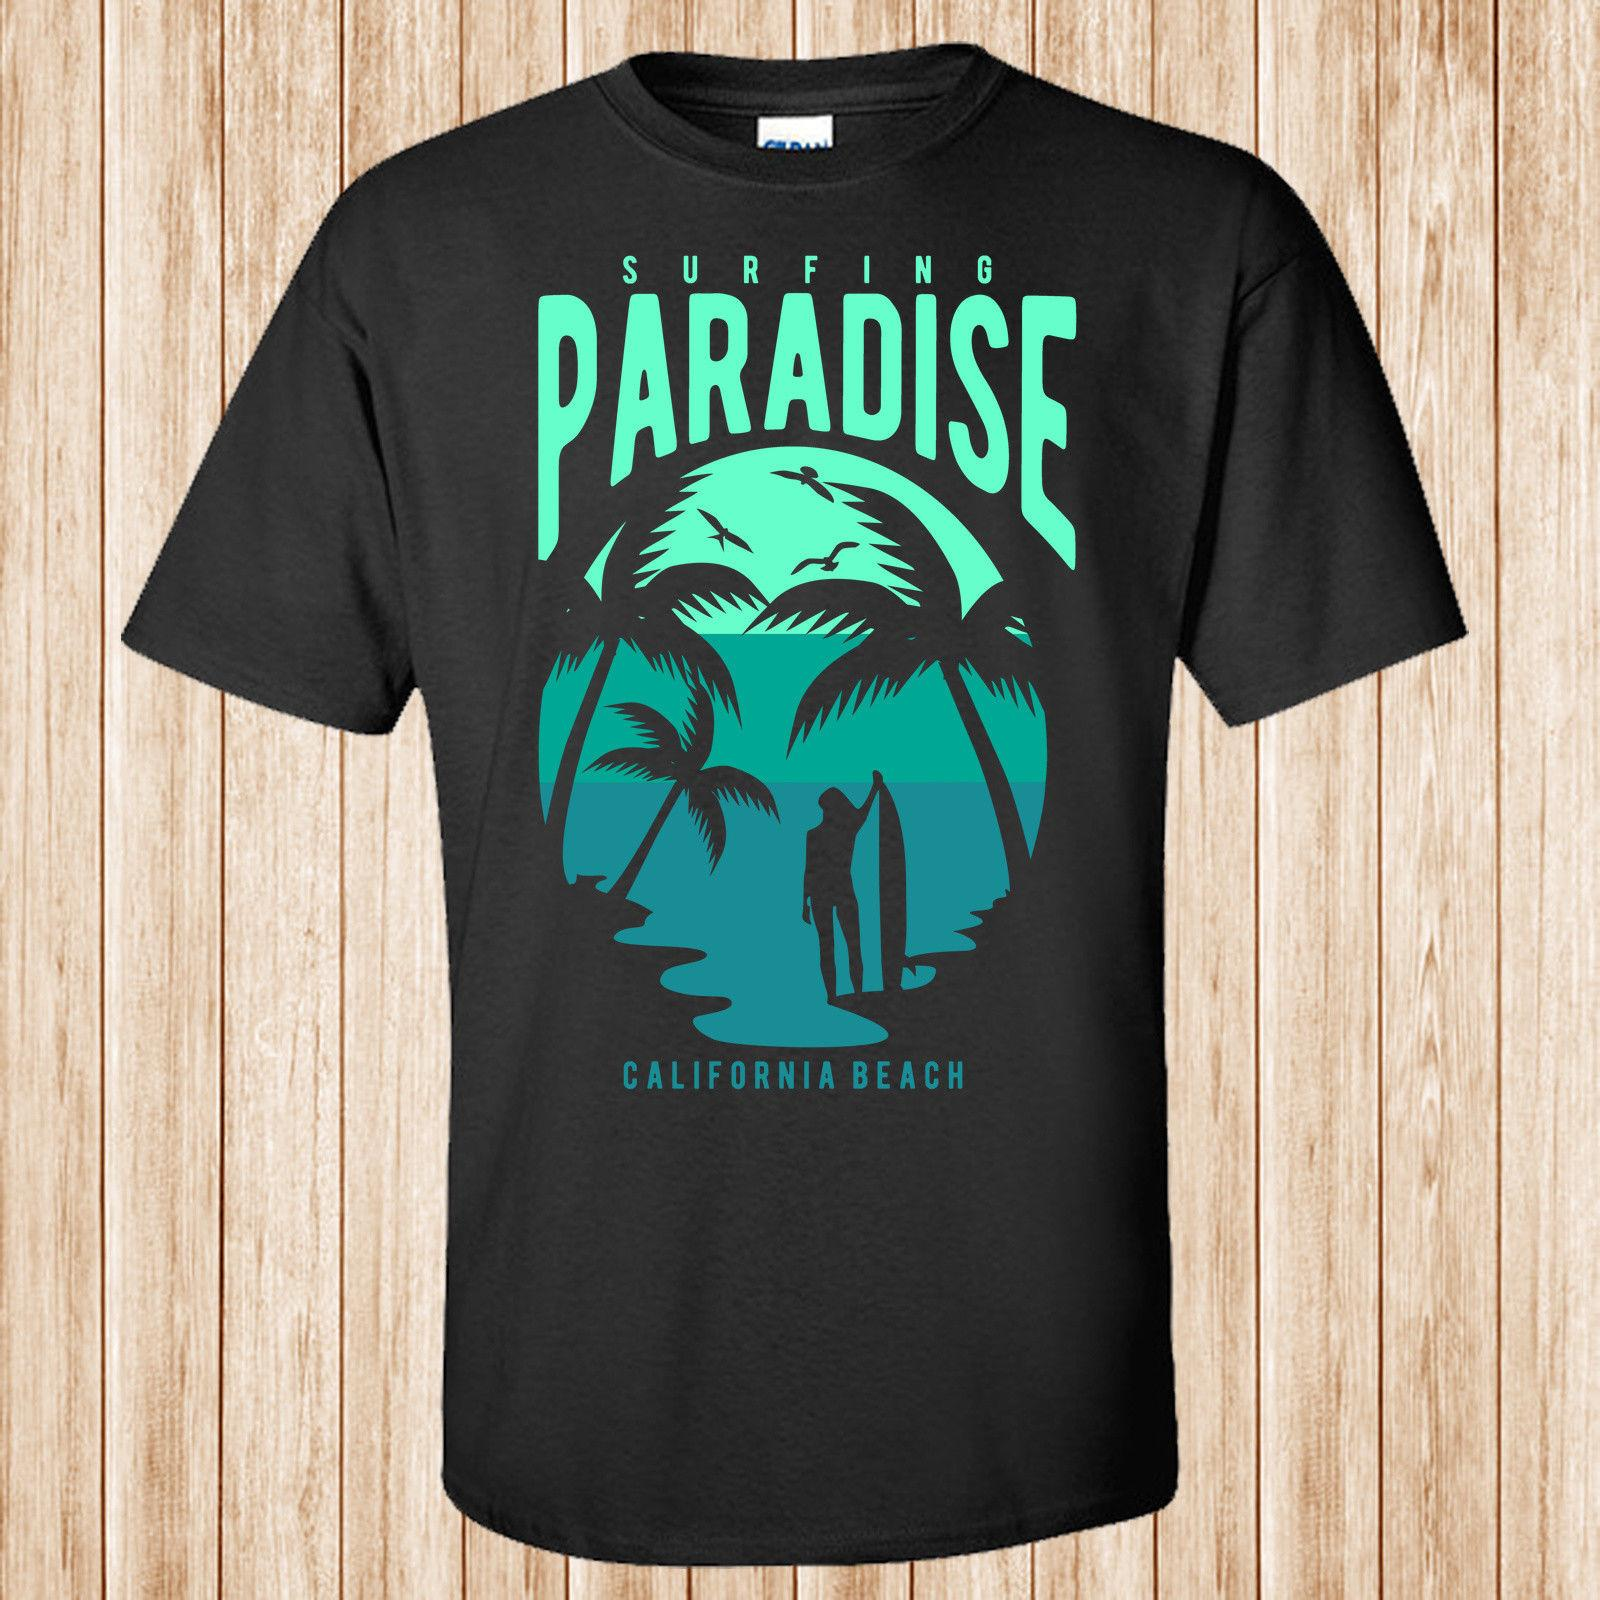 3011b606 Surfing Paradise California Beach T ShirtFunny Unisex Casual Tshirt Top Designer  T Shirts Short Sleeve Shirts From Jodeclothes, $12.96| DHgate.Com